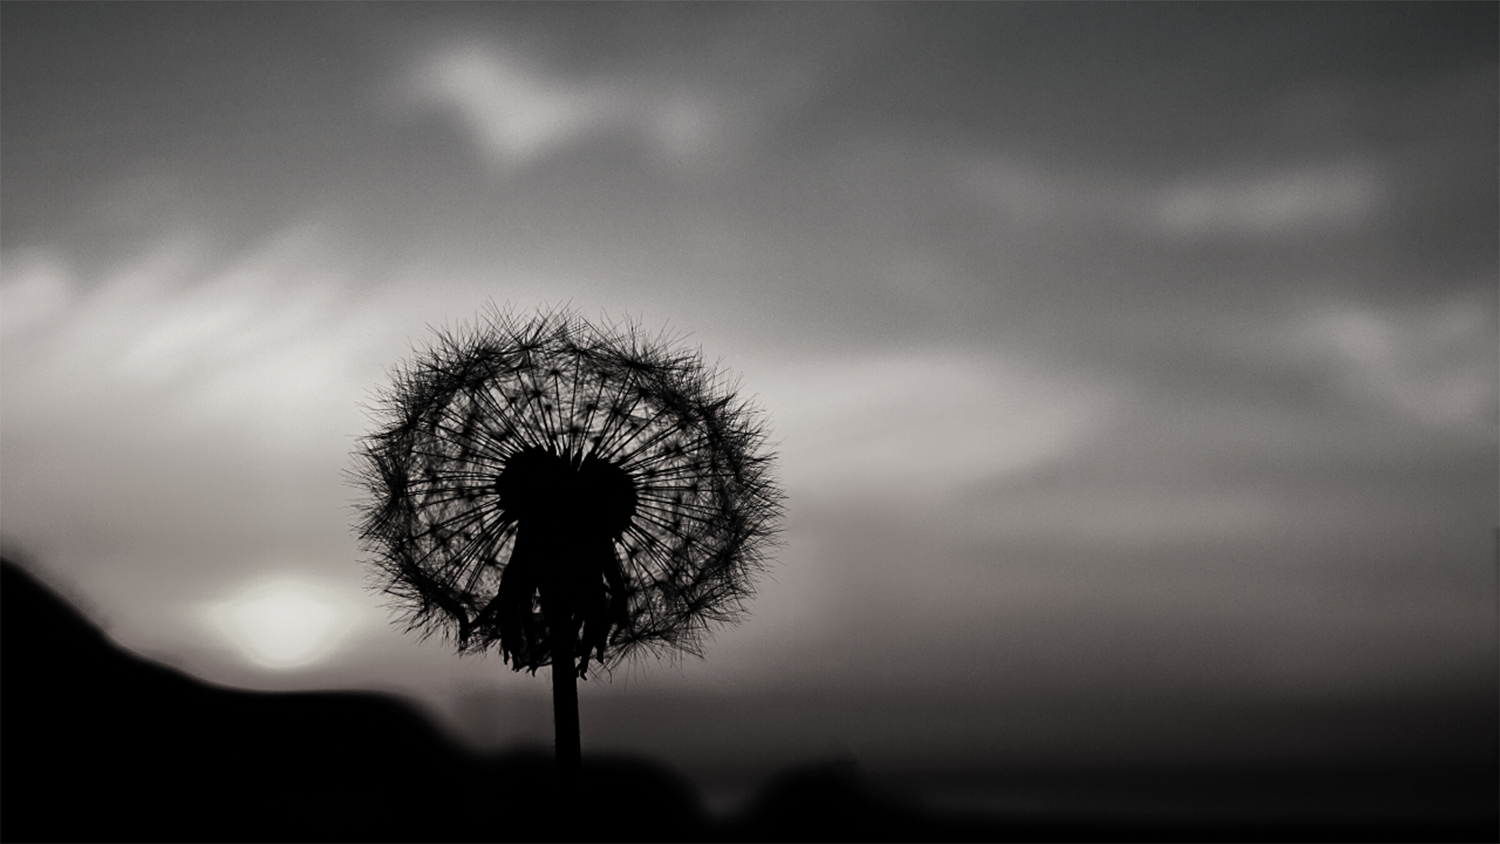 A dandelion silhouetted against a dark sky